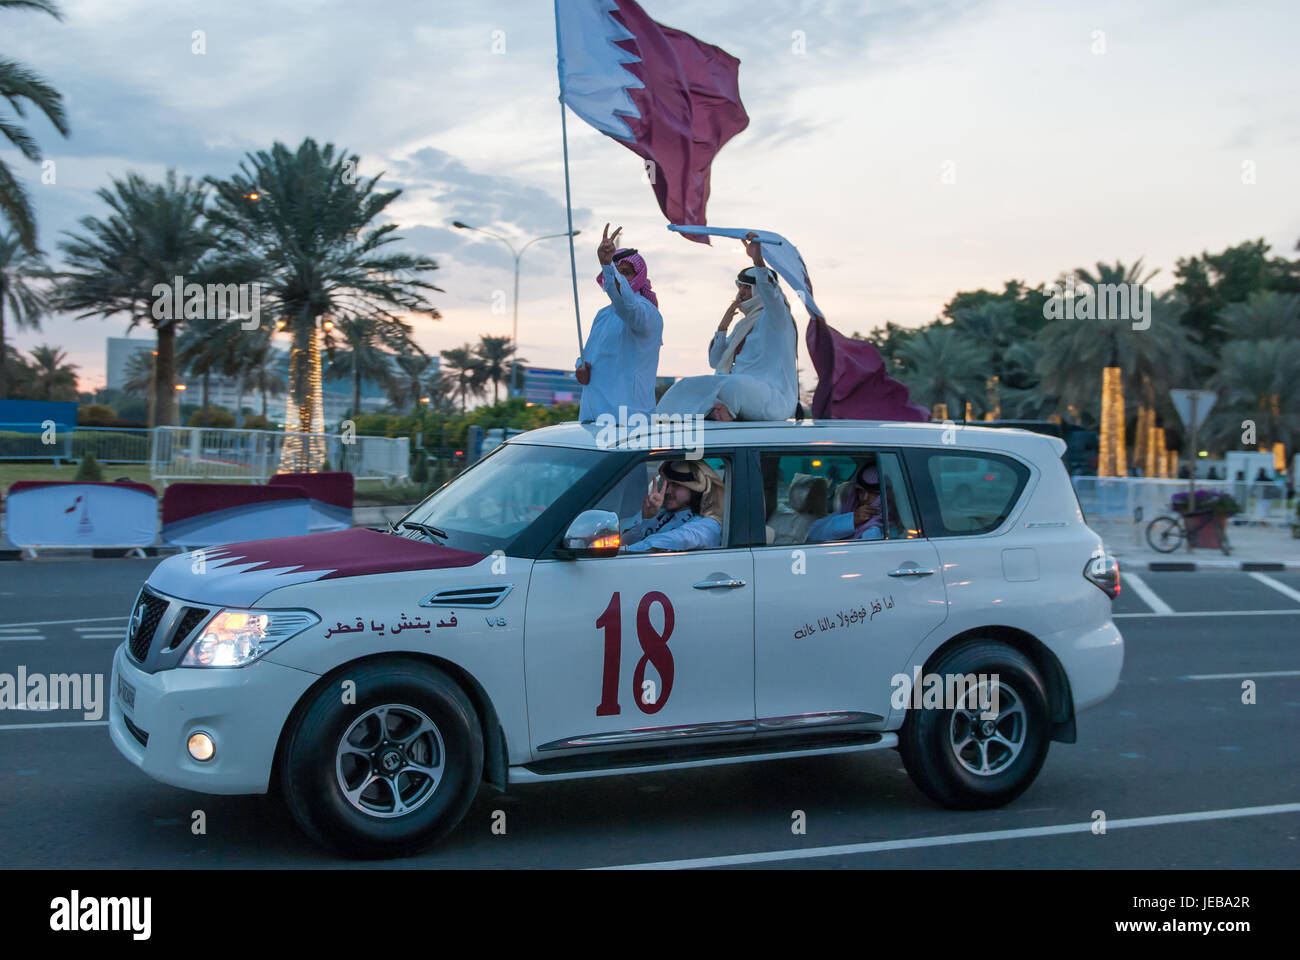 18th December 2012.  Doha.  Qatar.  The 18th December is when Qatar National Day is celebrated.  Nissan Patrol 4X4 Stock Photo